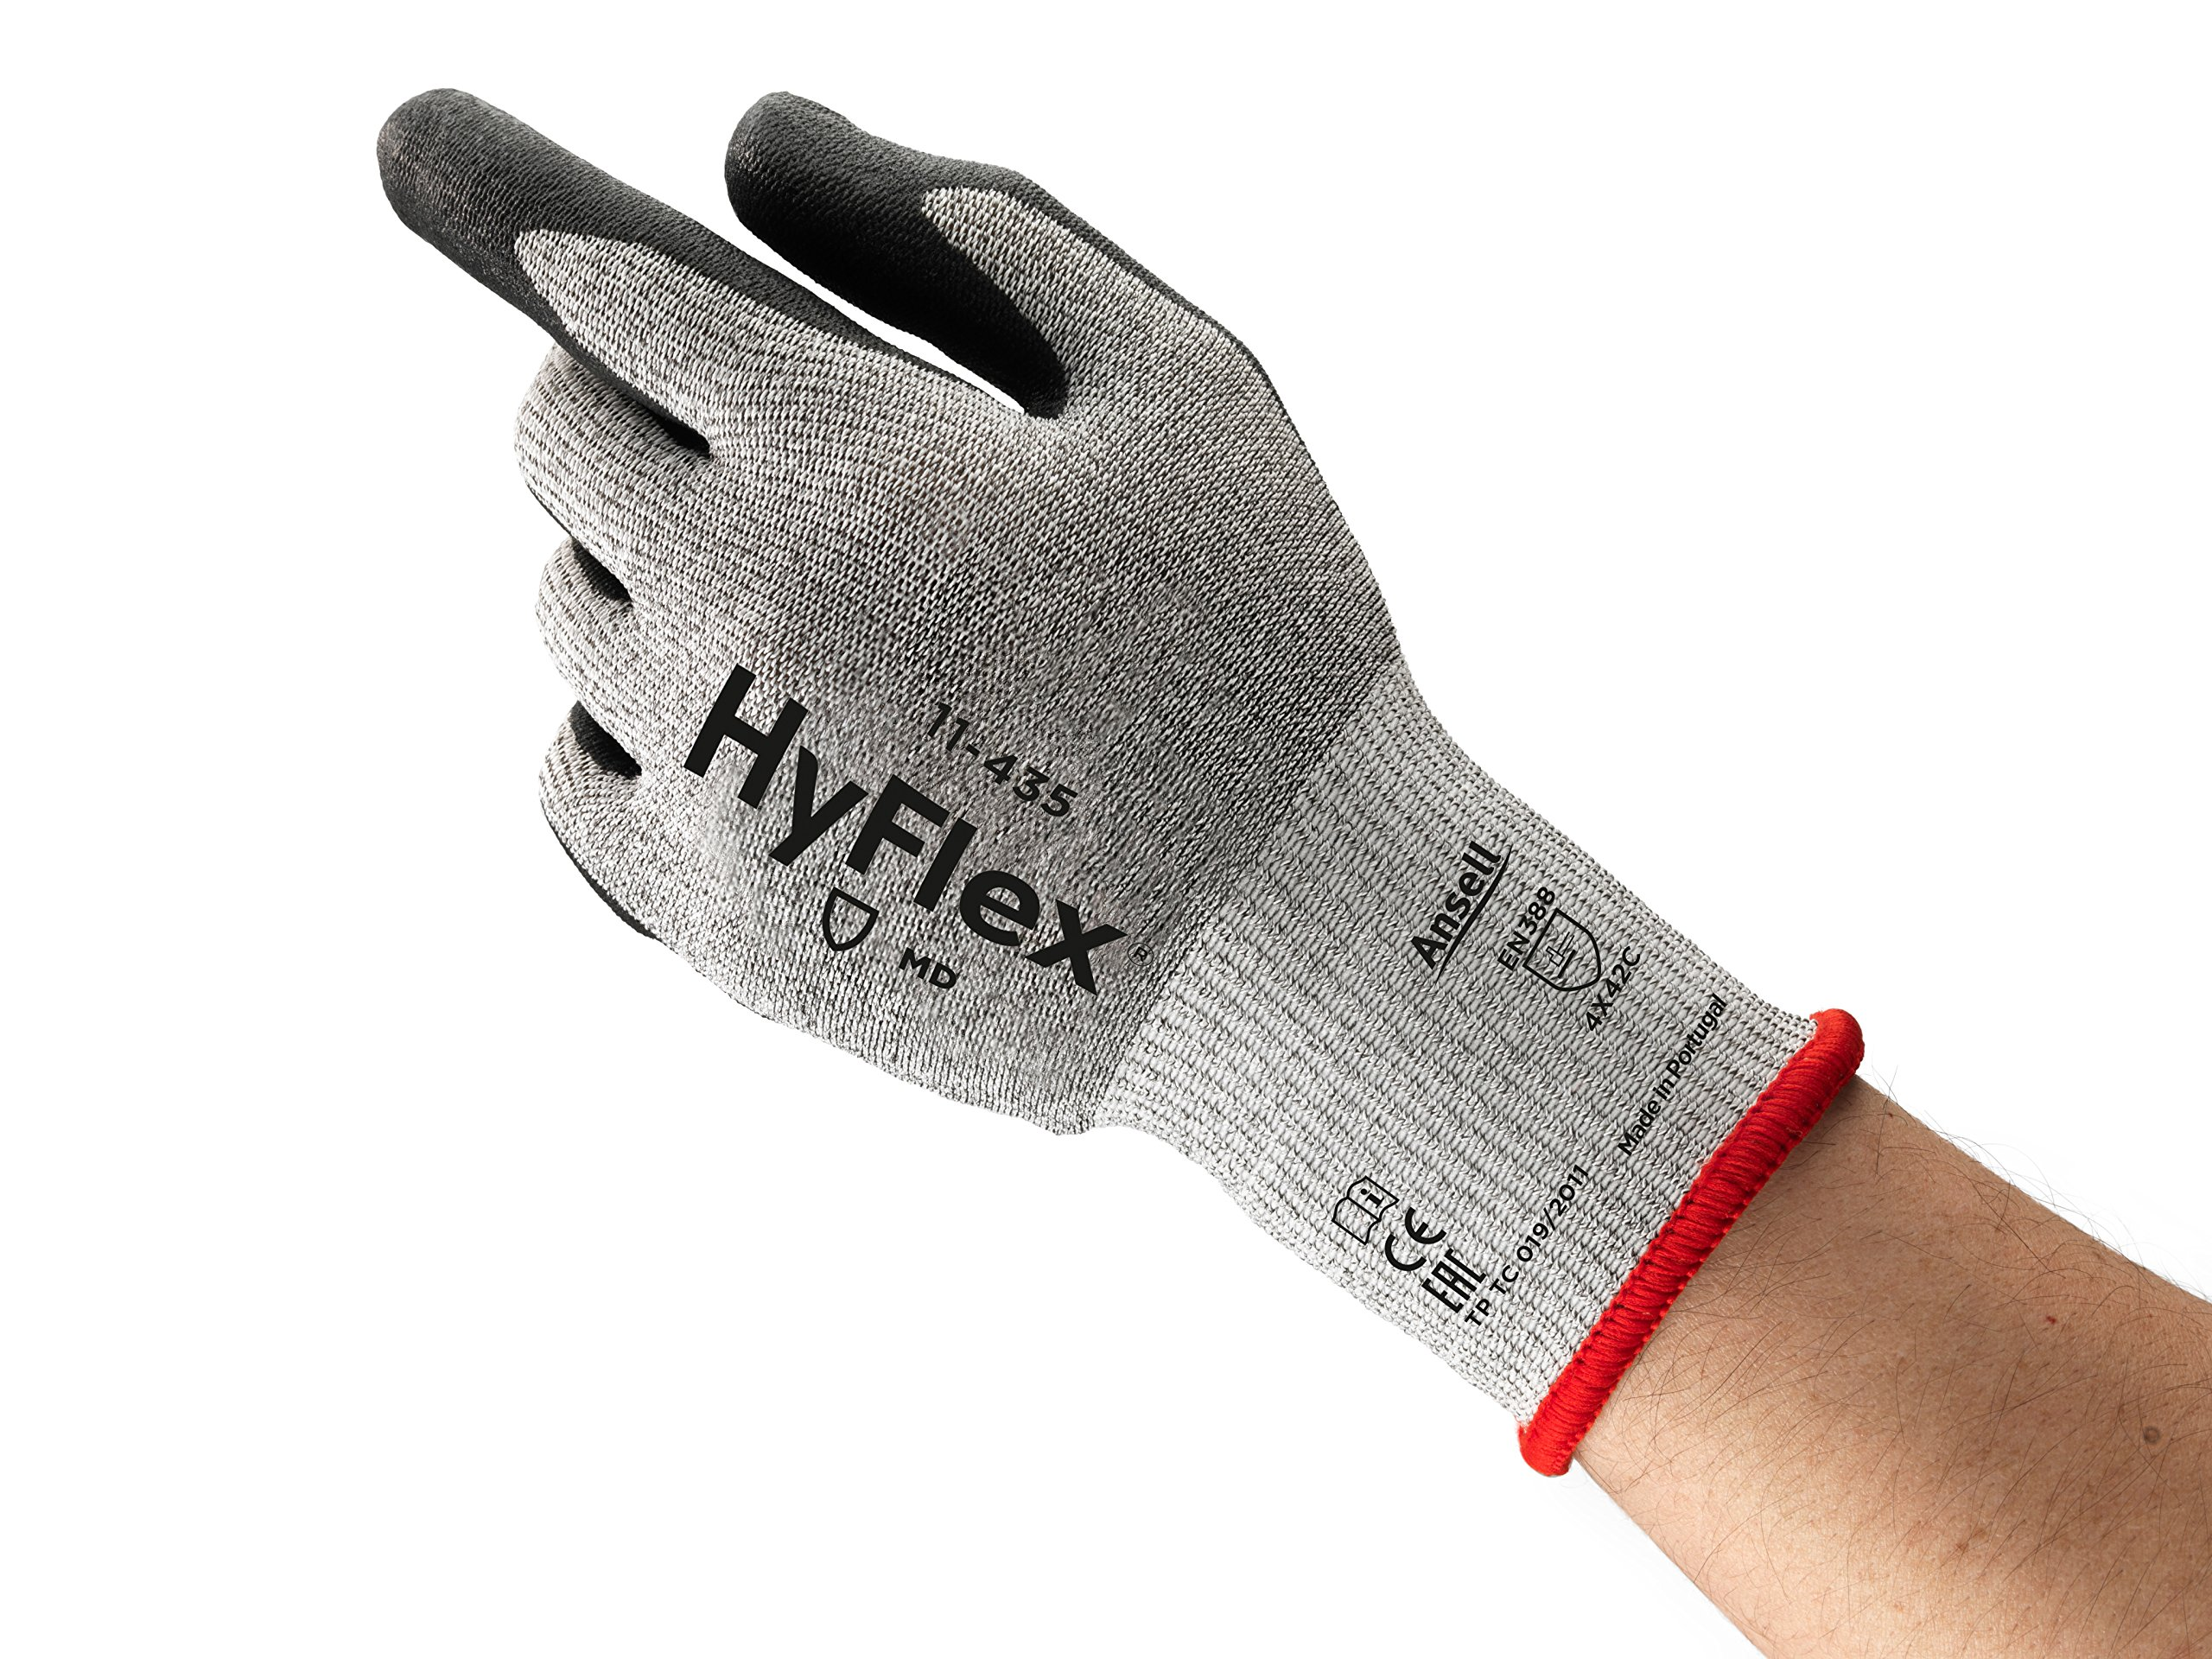 Ansell HyFlex 11-435 Nylon Medium-Duty Cut Protection Glove with Dyneema Knitwrist, Abrasion/Cut Resistant, Size 11, Gray (Pack of 12 Pair)